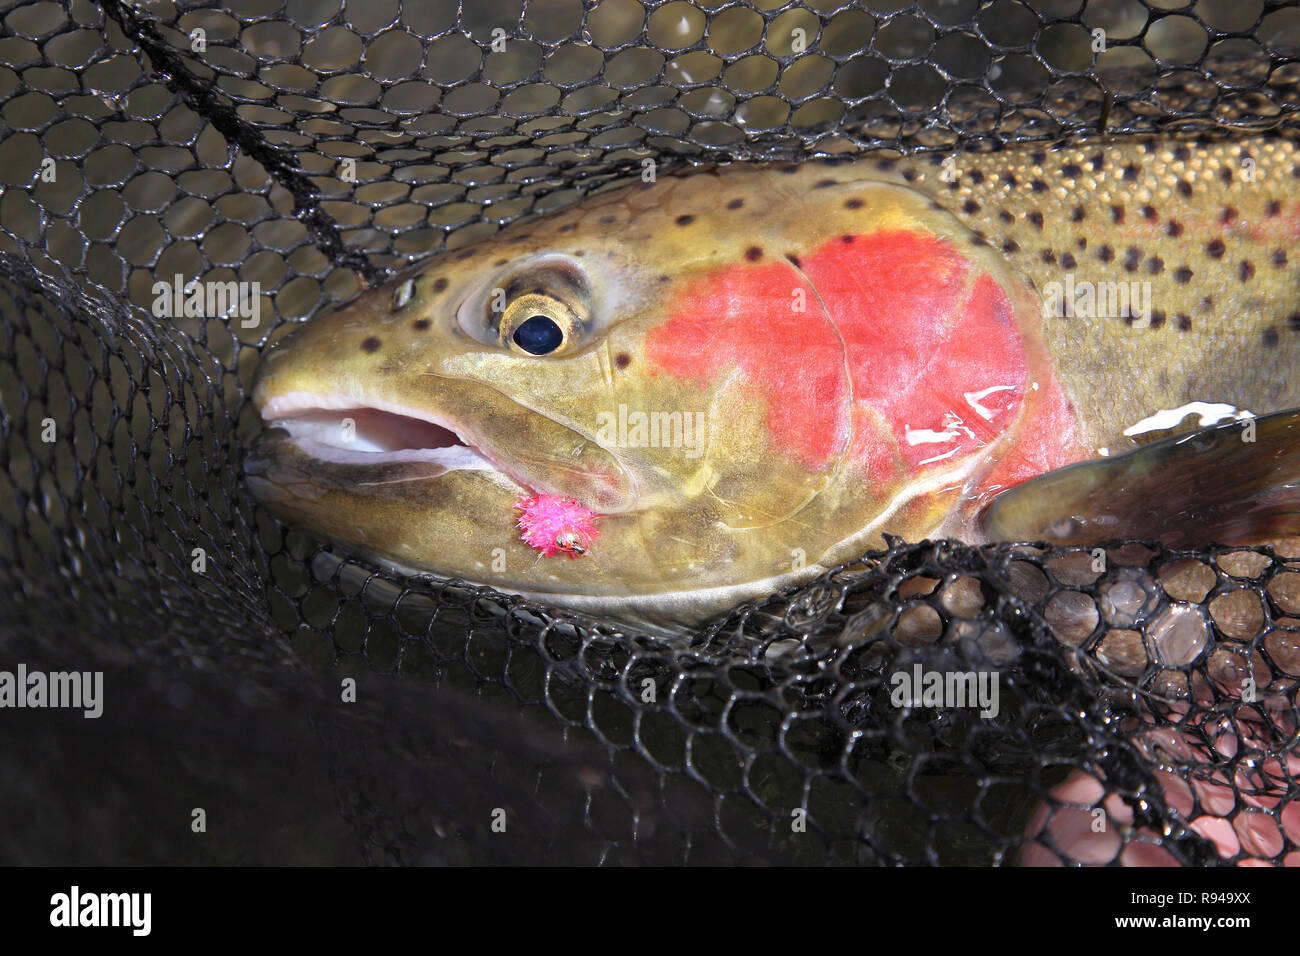 Steelhead trout with pink lure in mouth closeup - Stock Image